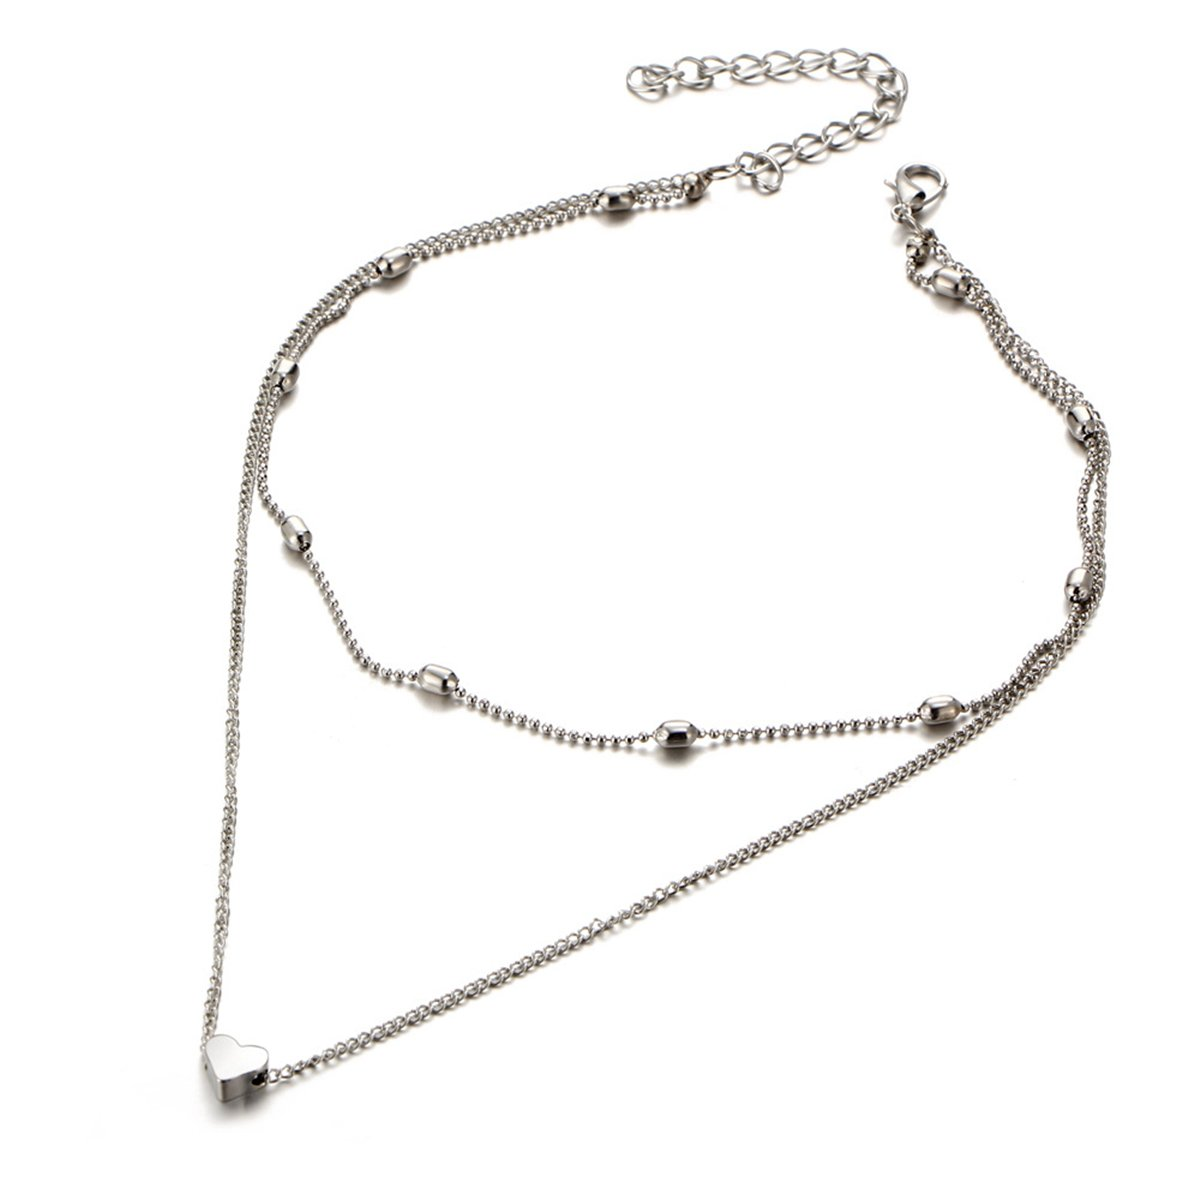 Anqifull Dainty Layered Gold Chocker Handmade Beads Fill Heart White Opal Necklace for Women Girls 012 by Anqifull (Image #3)